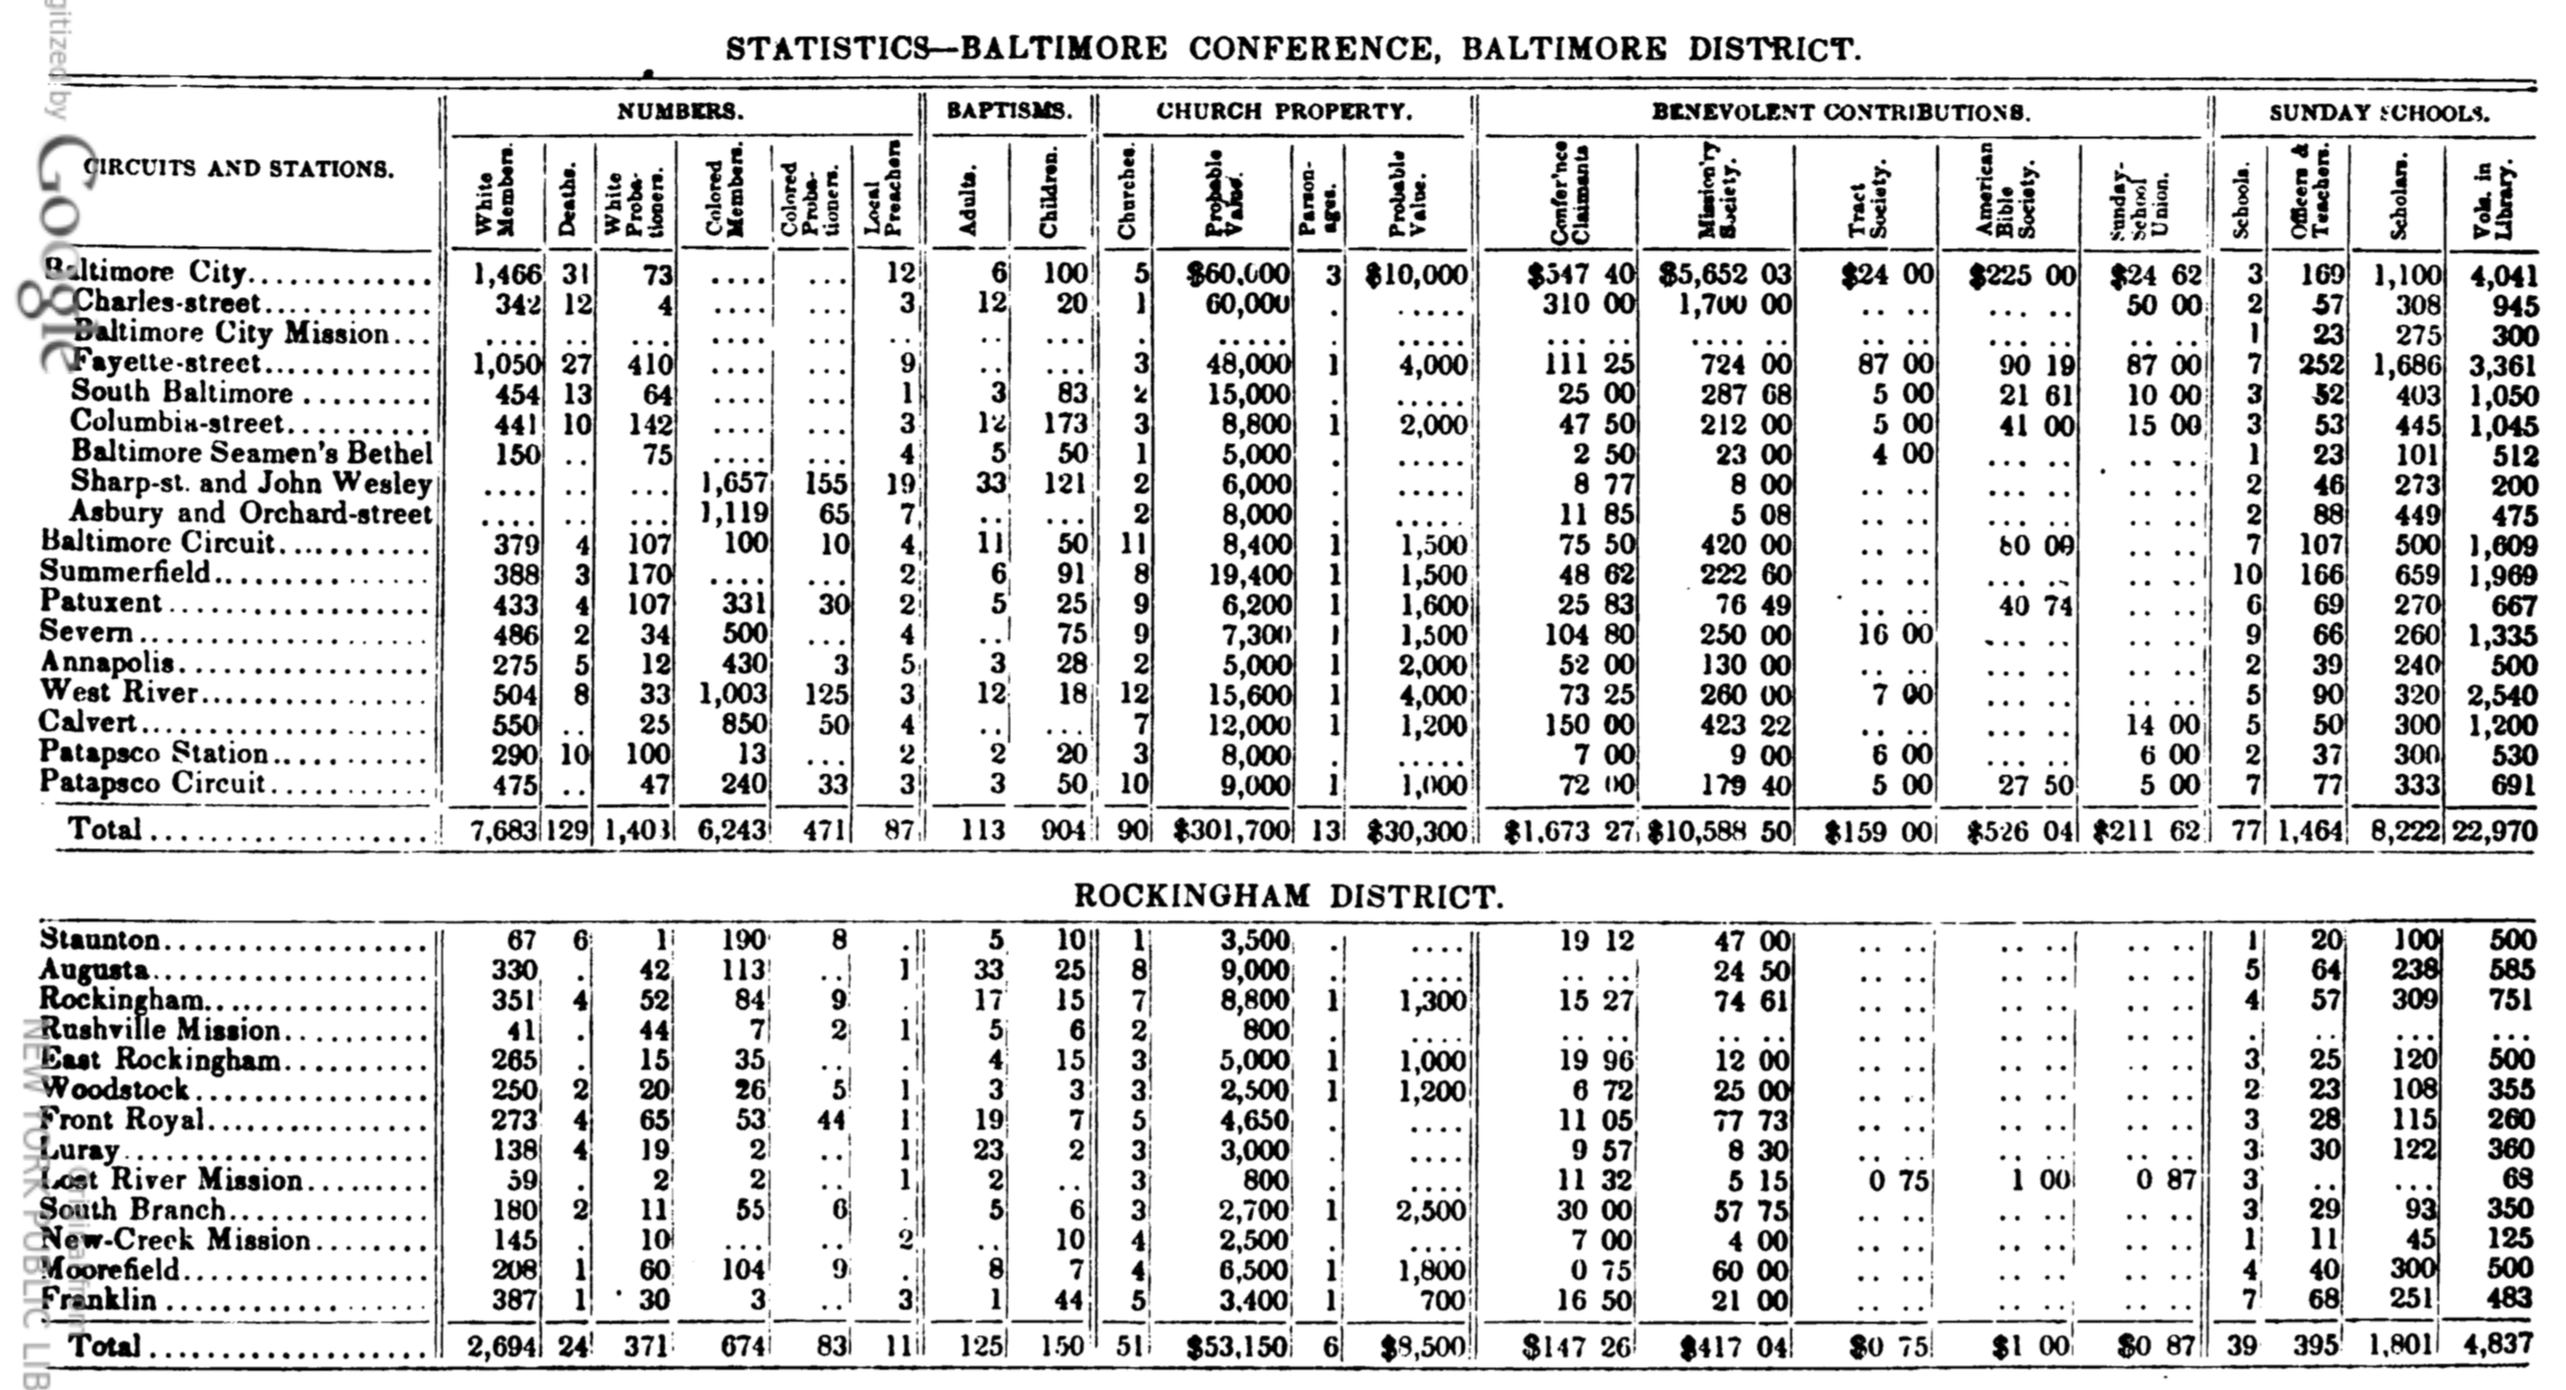 Table from Methodist minutes for 1787